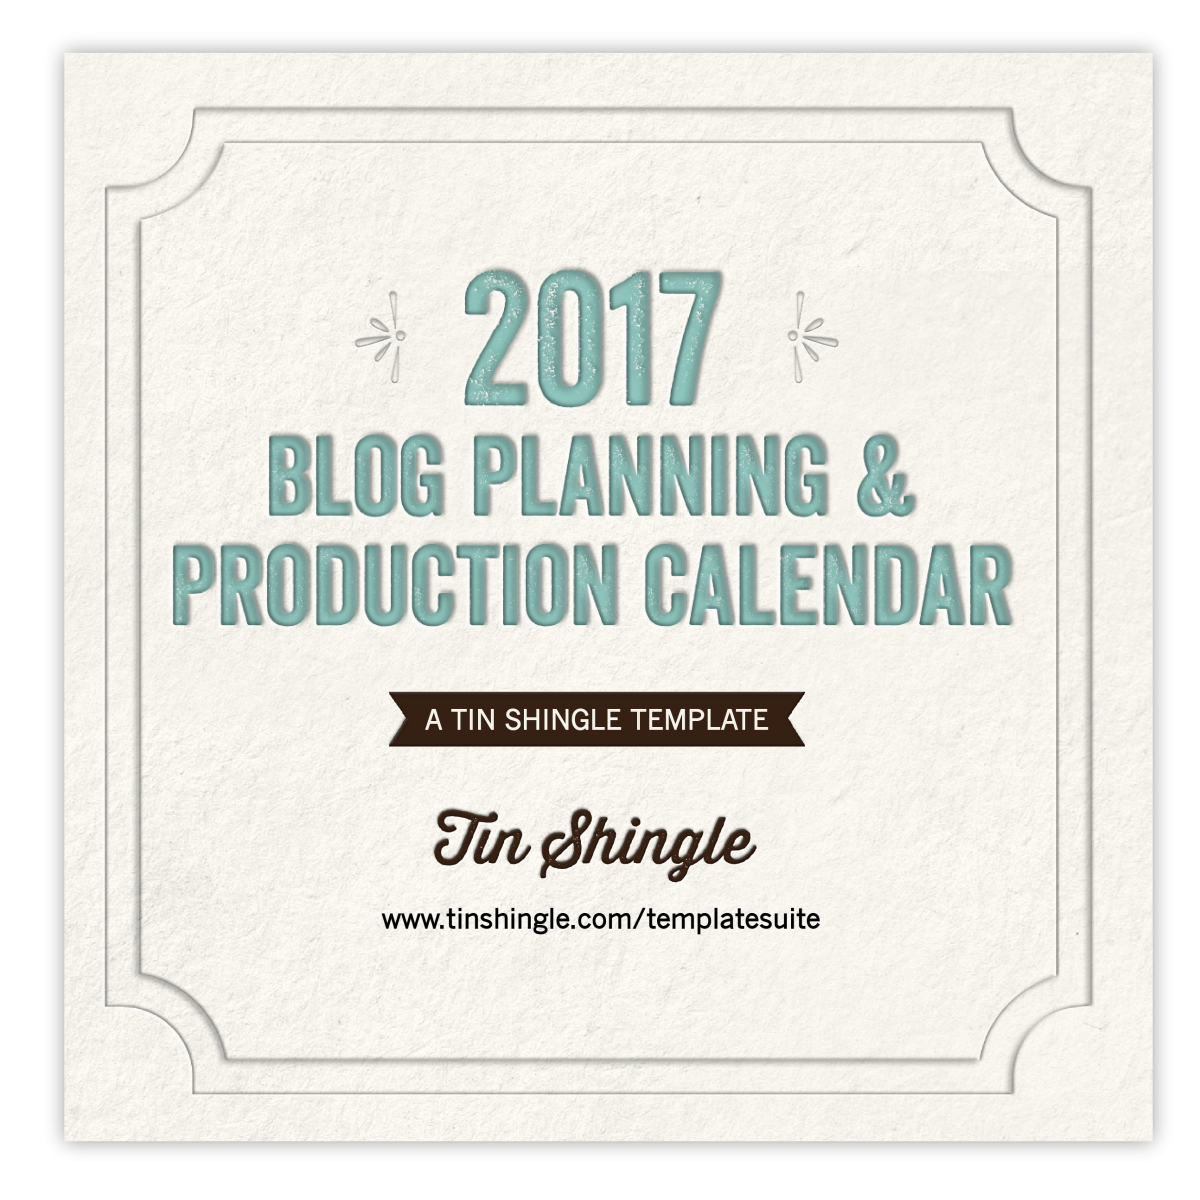 2017 Blog Planning and Production Calendar